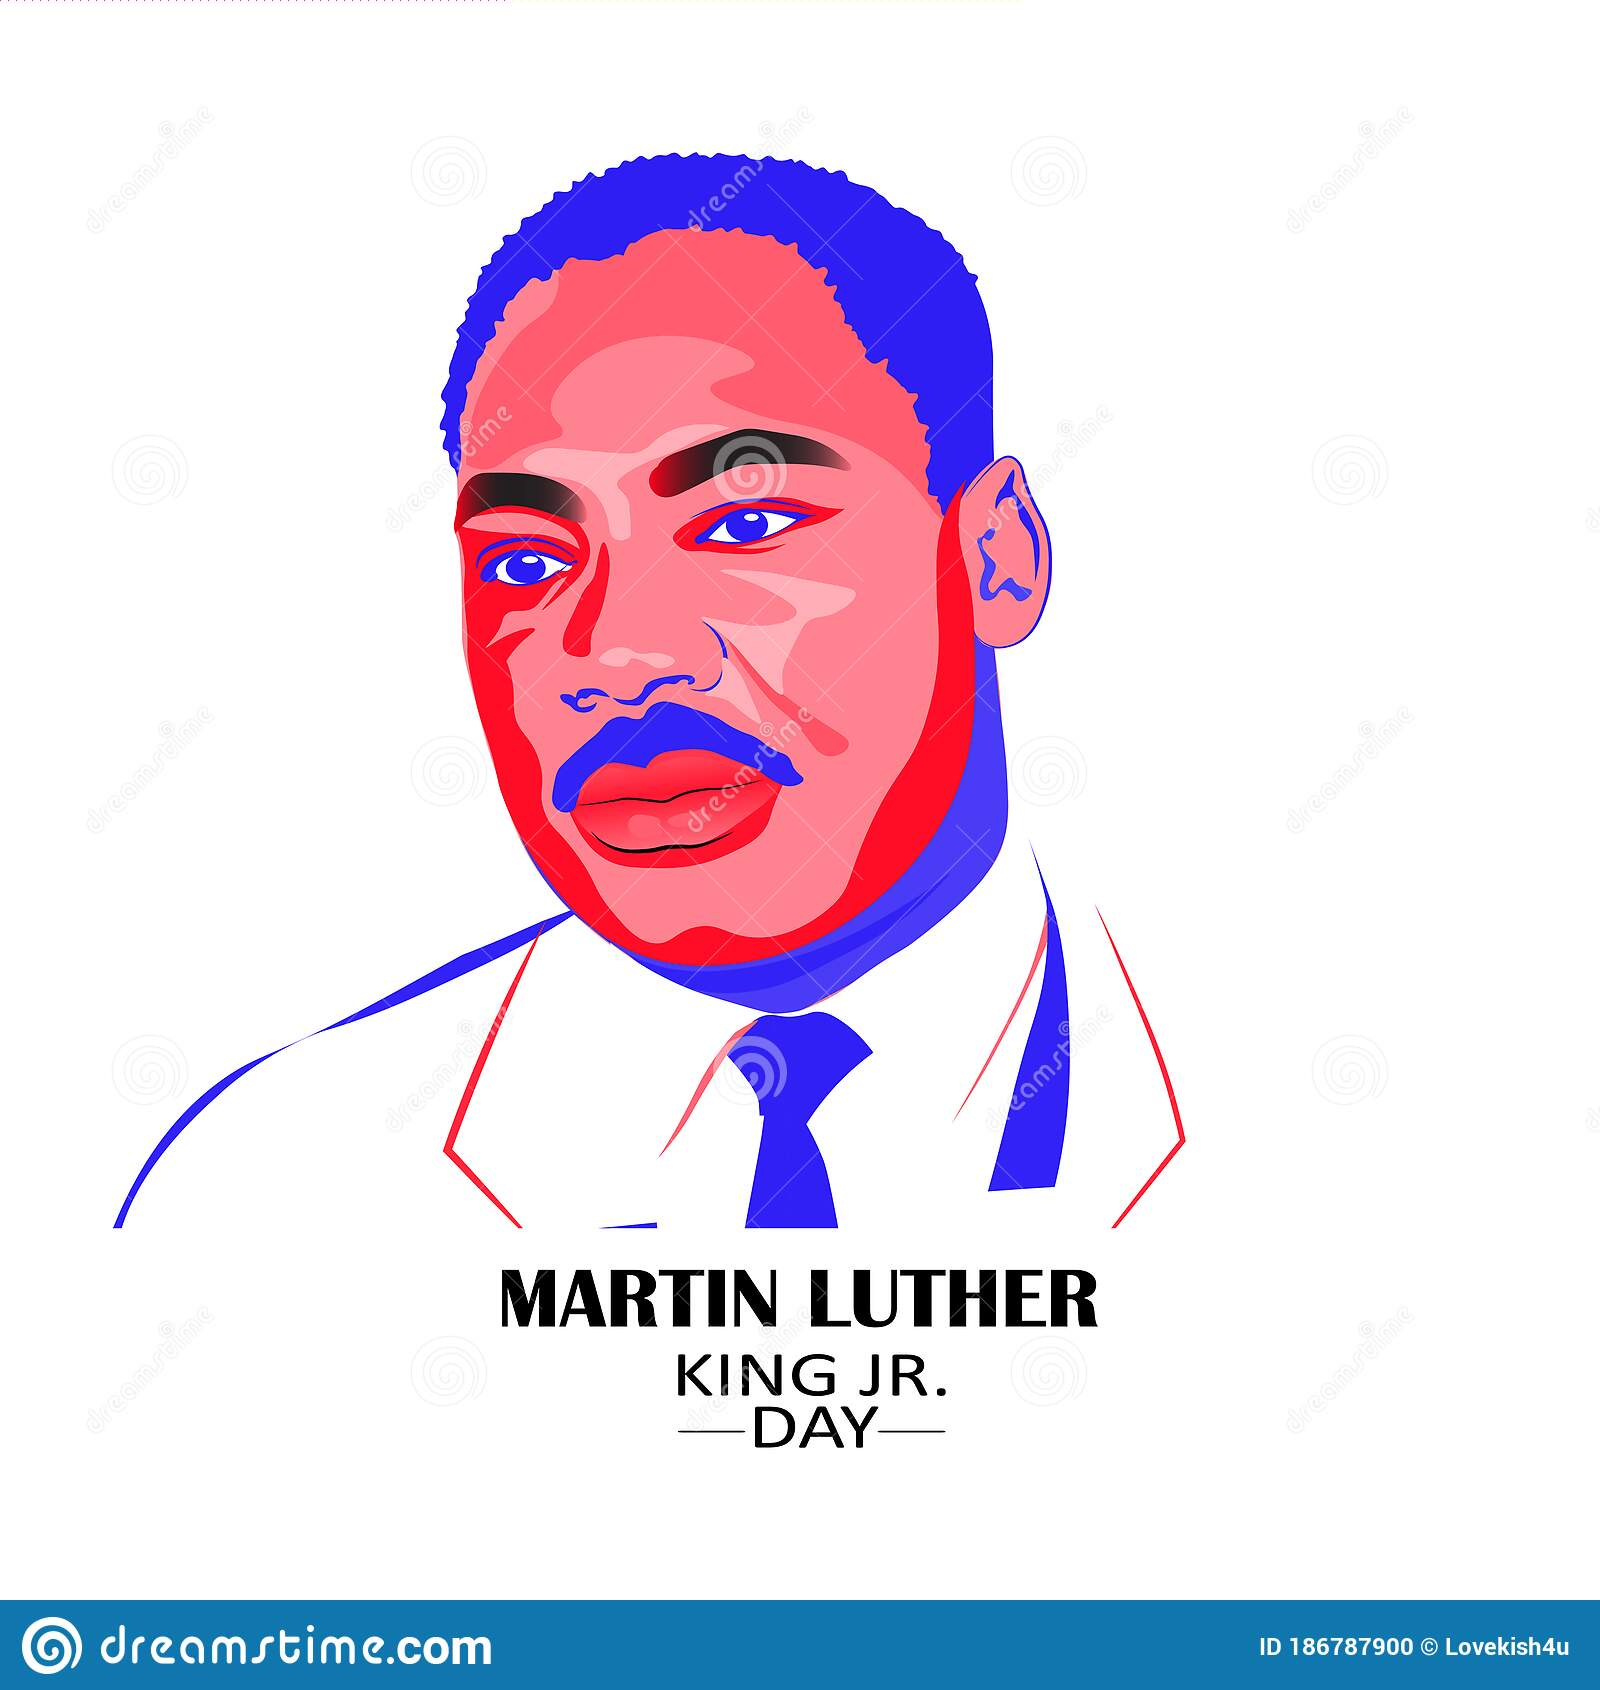 Martin Luther King Jr. Day Greeting Card Background. I ...